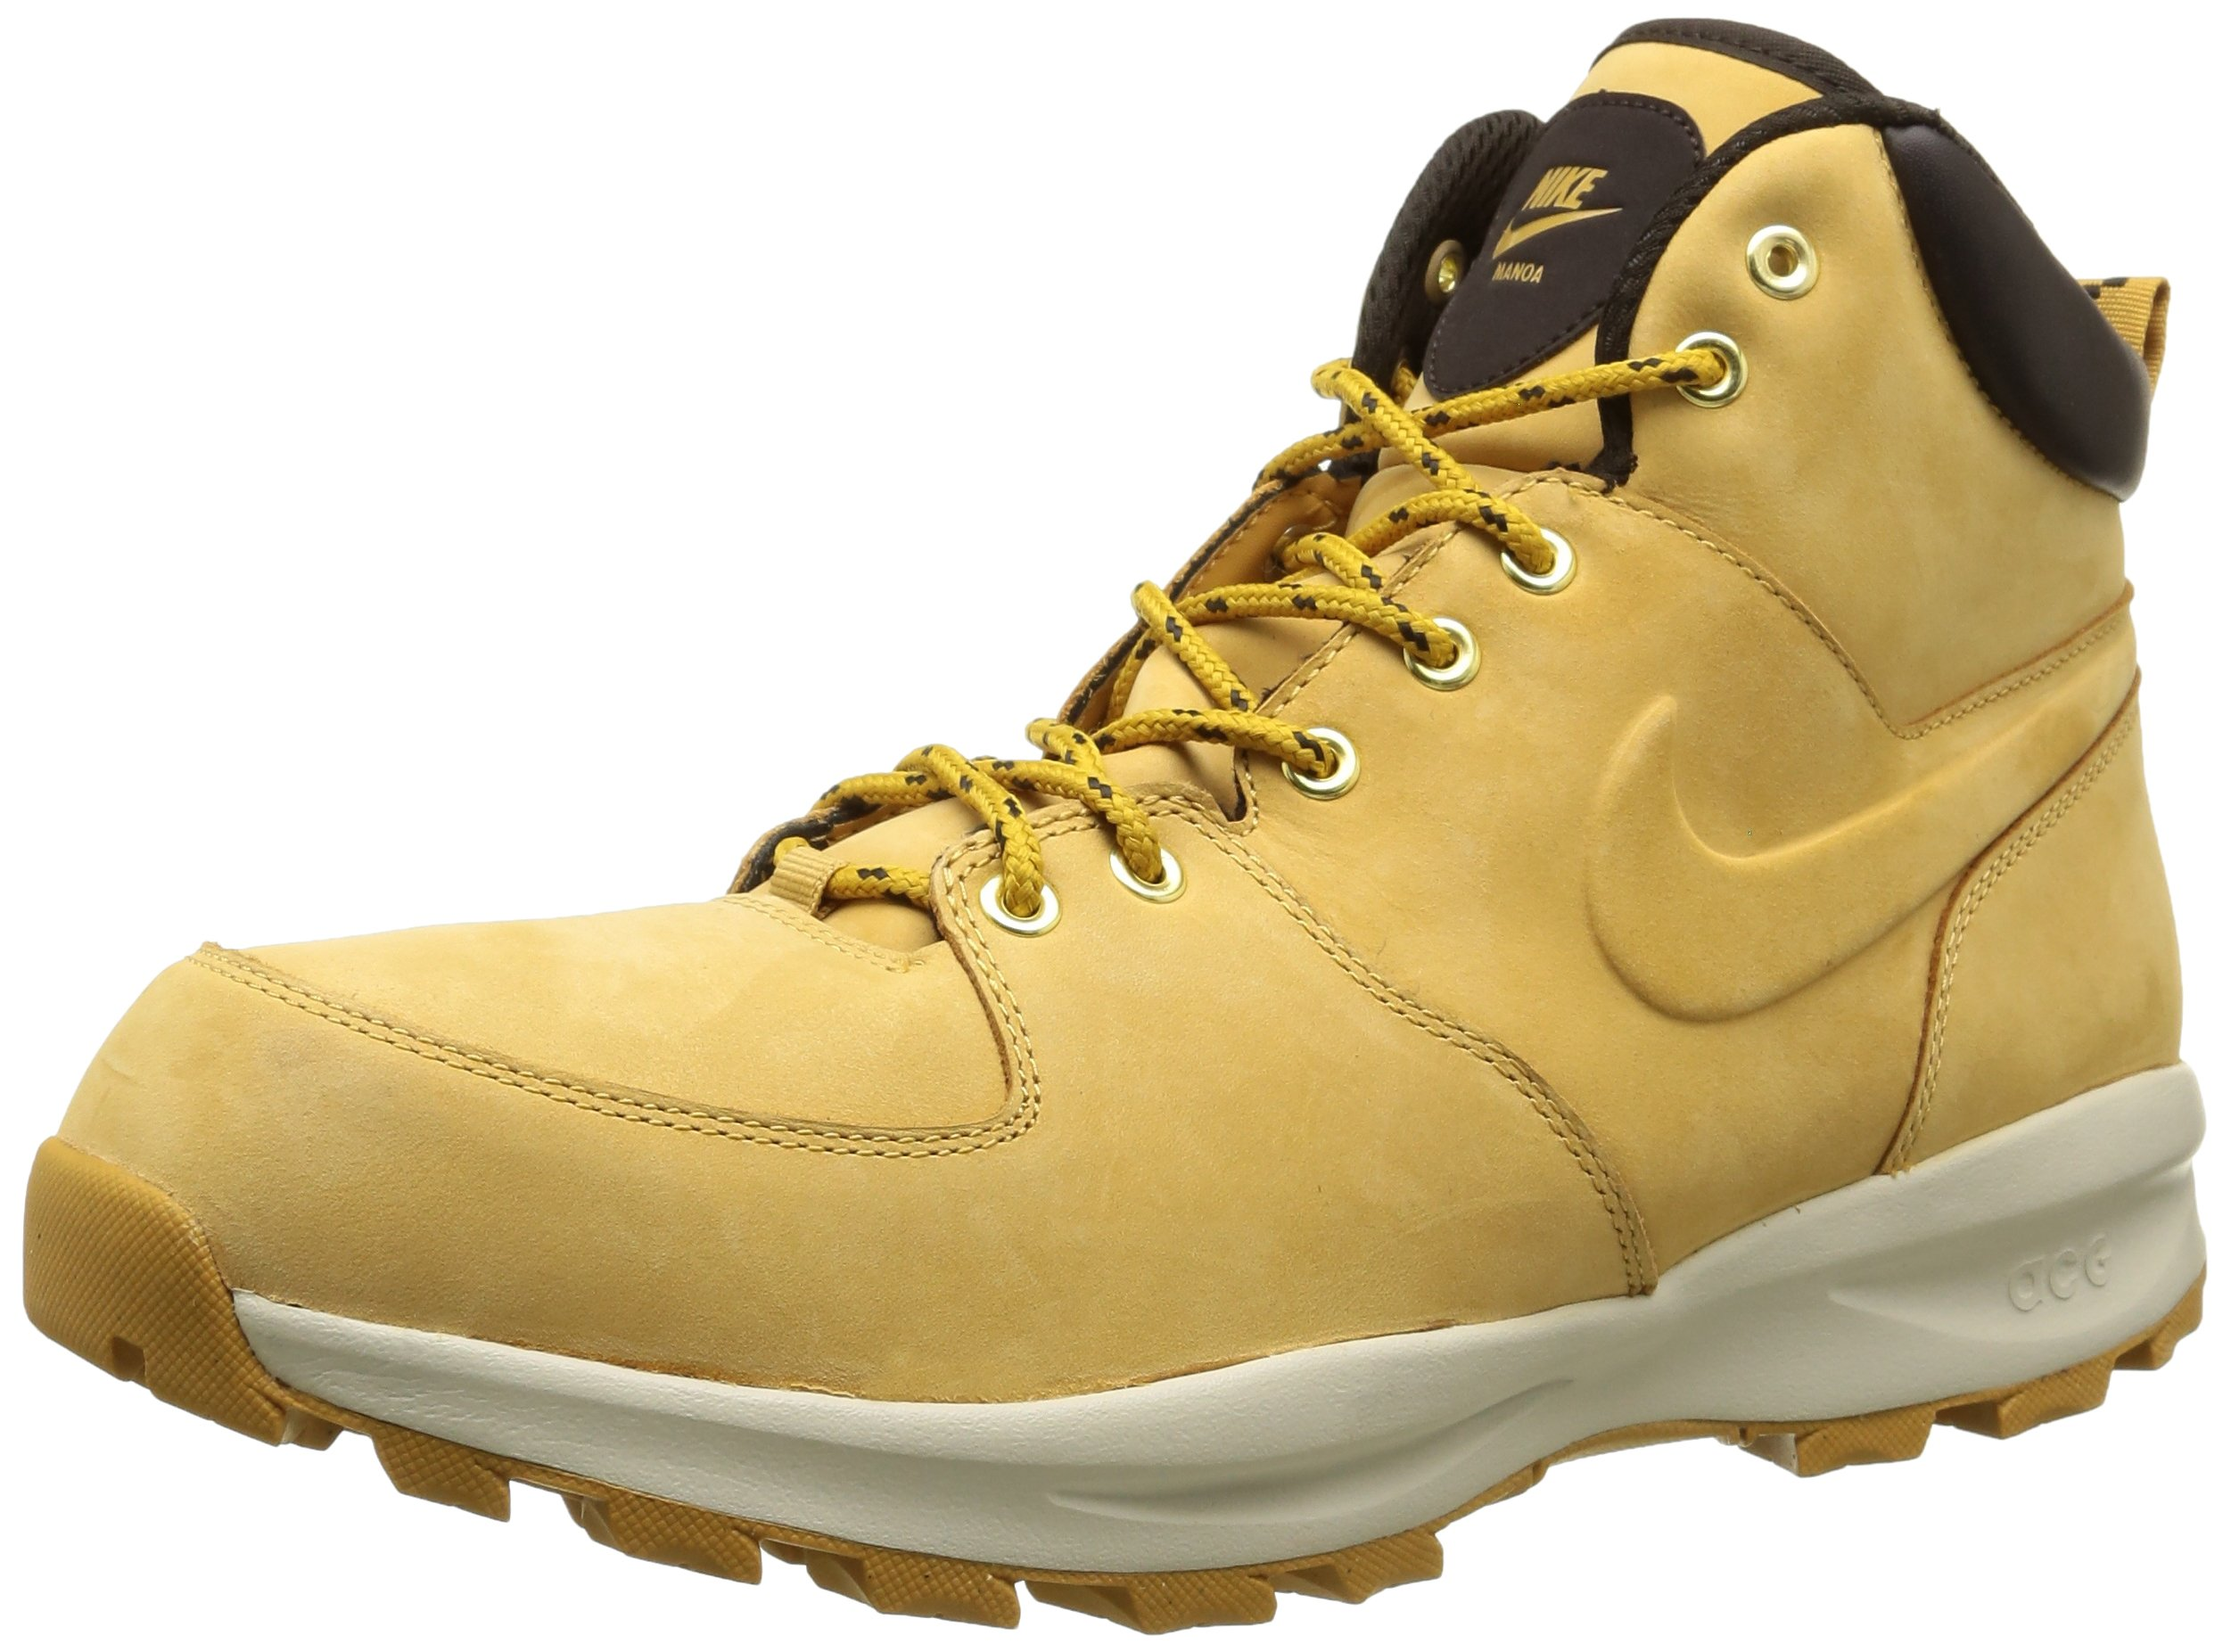 reputable site f98eb 65869 Galleon - NIKE Men s Manoa Leather Boot, Haystack Haystack Velvet Brown, 10  D(M) US